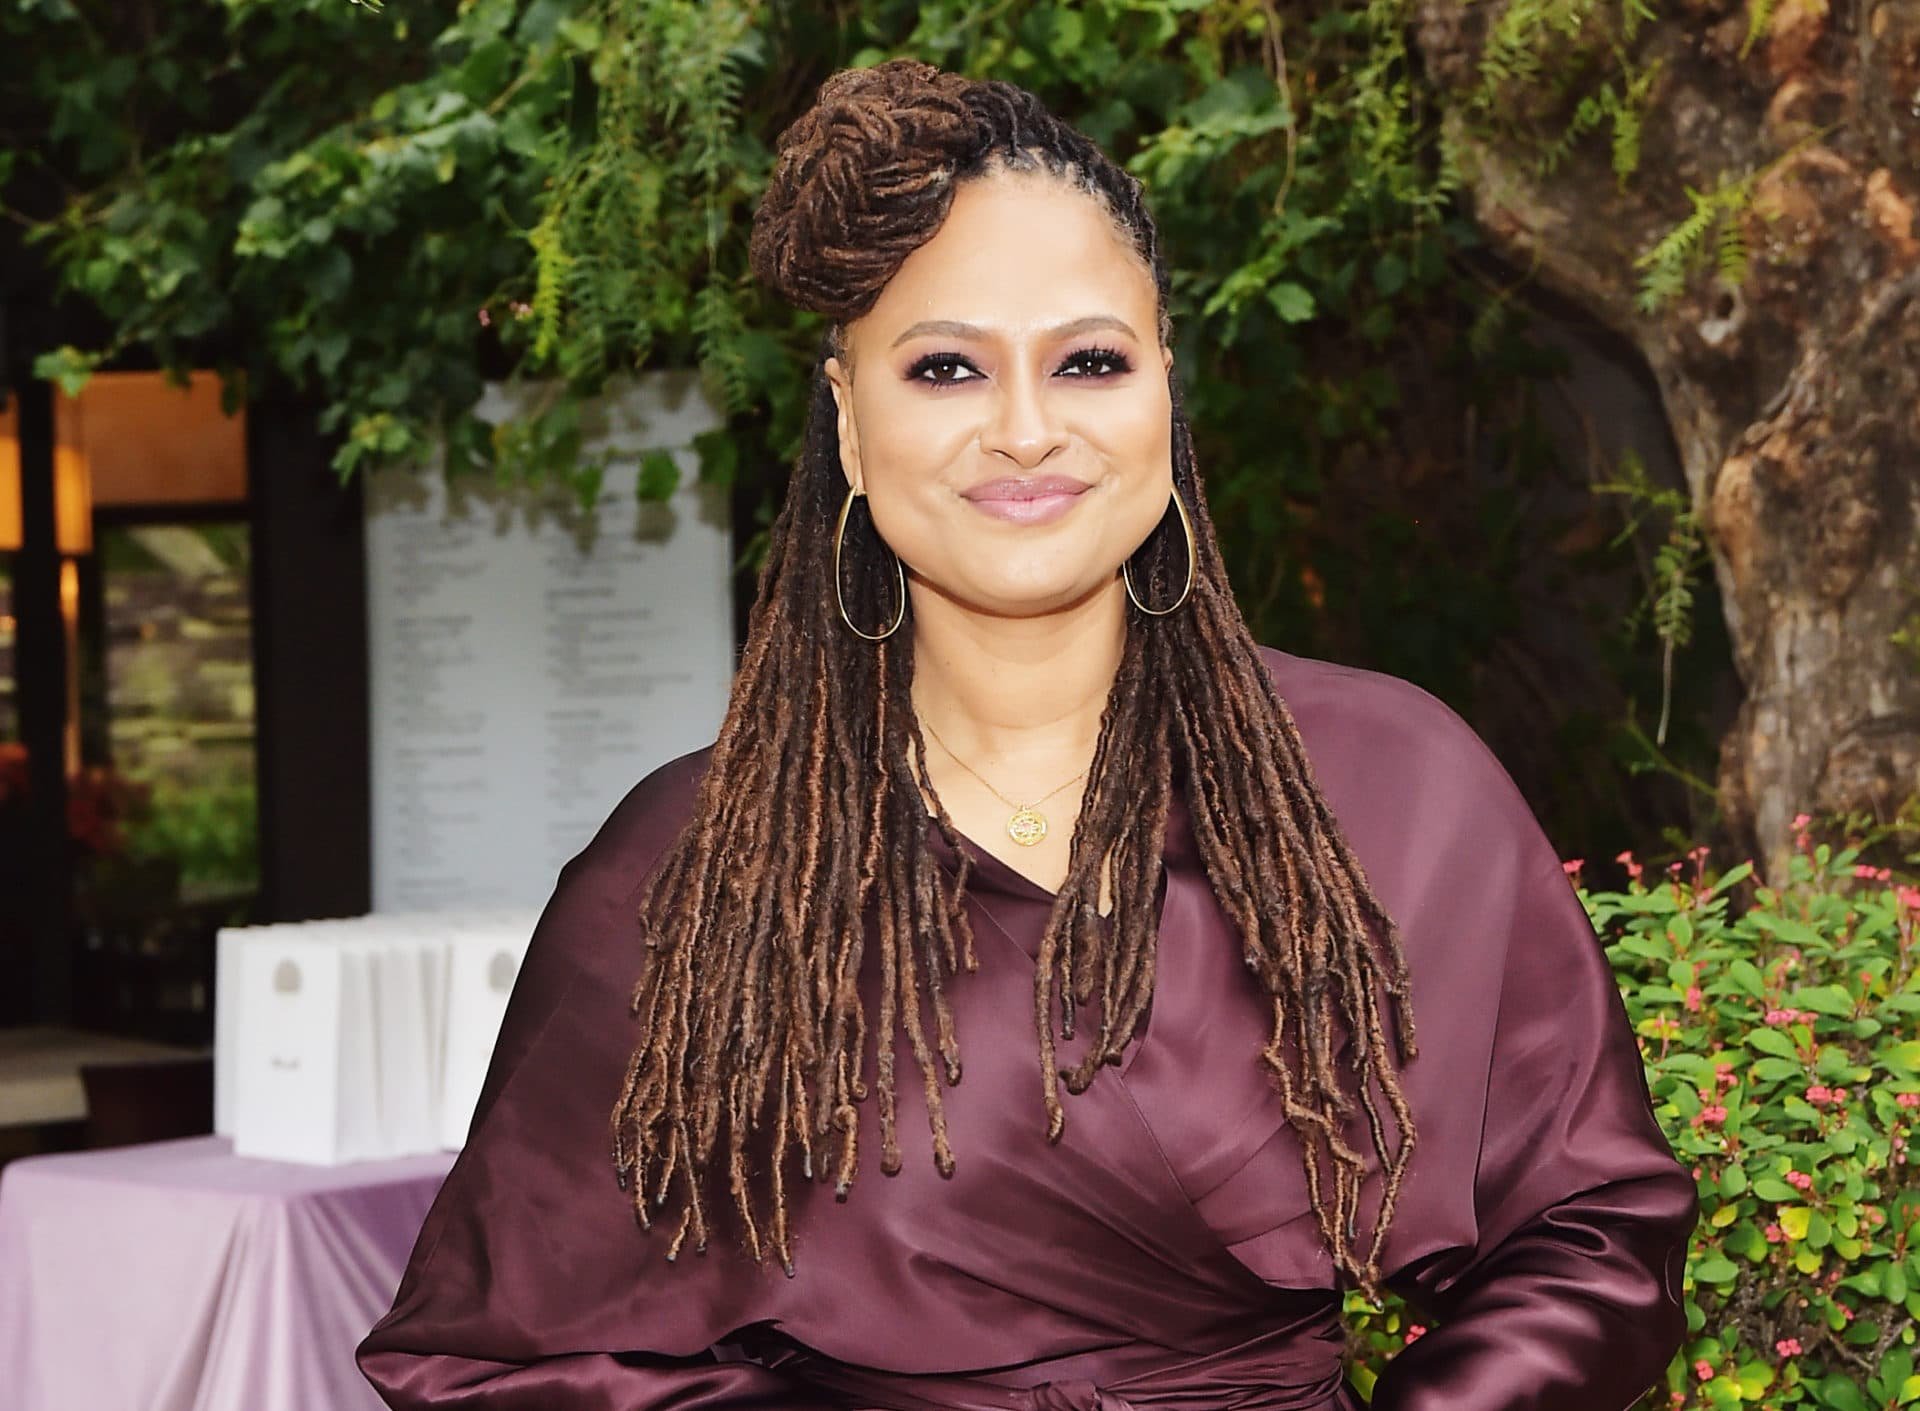 Ava DuVernay Has A 'Real Issue' With Being Called 'Auntie' - Essence